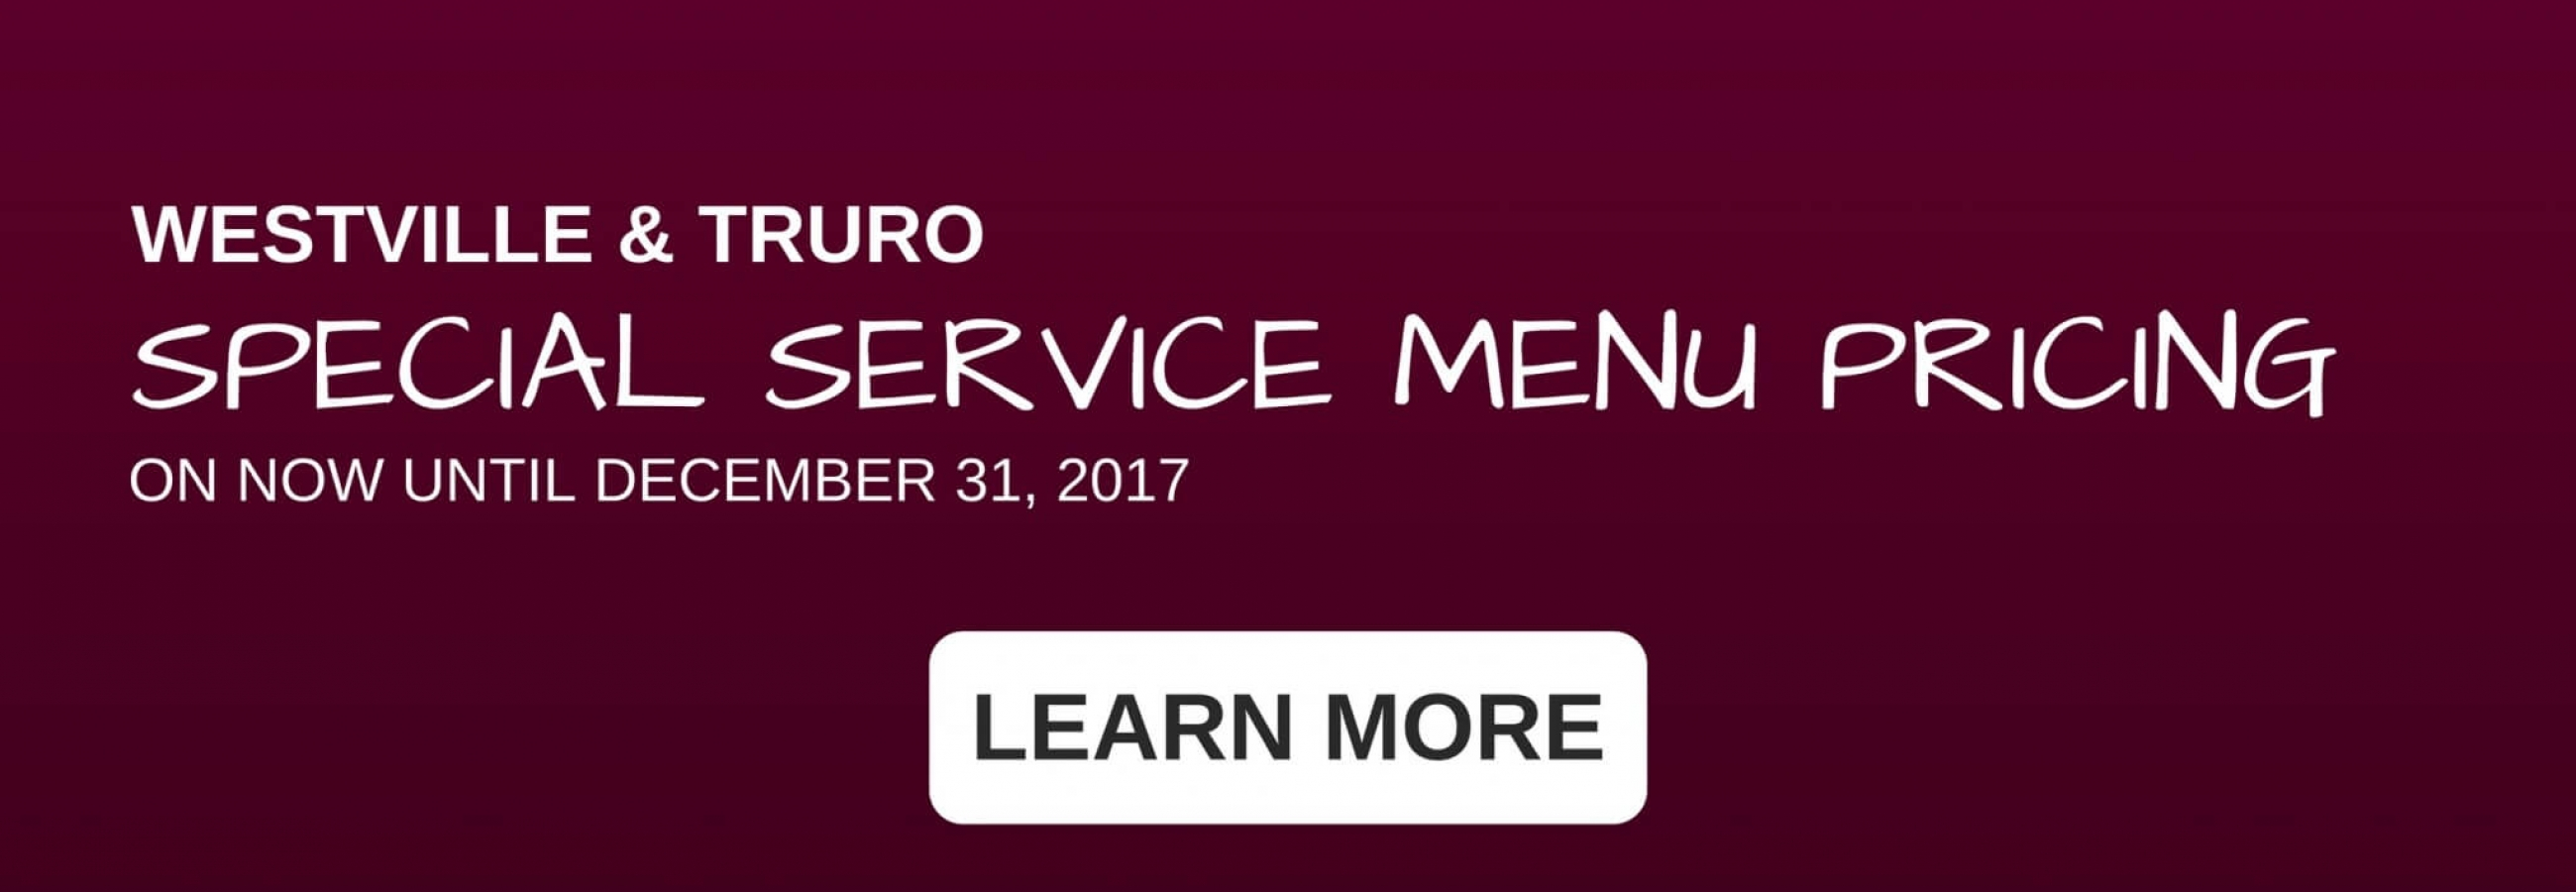 SPECIAL SERVICE MENU PRICING ON NOW AT TRURO AND WESTVILLE LOCATIONS